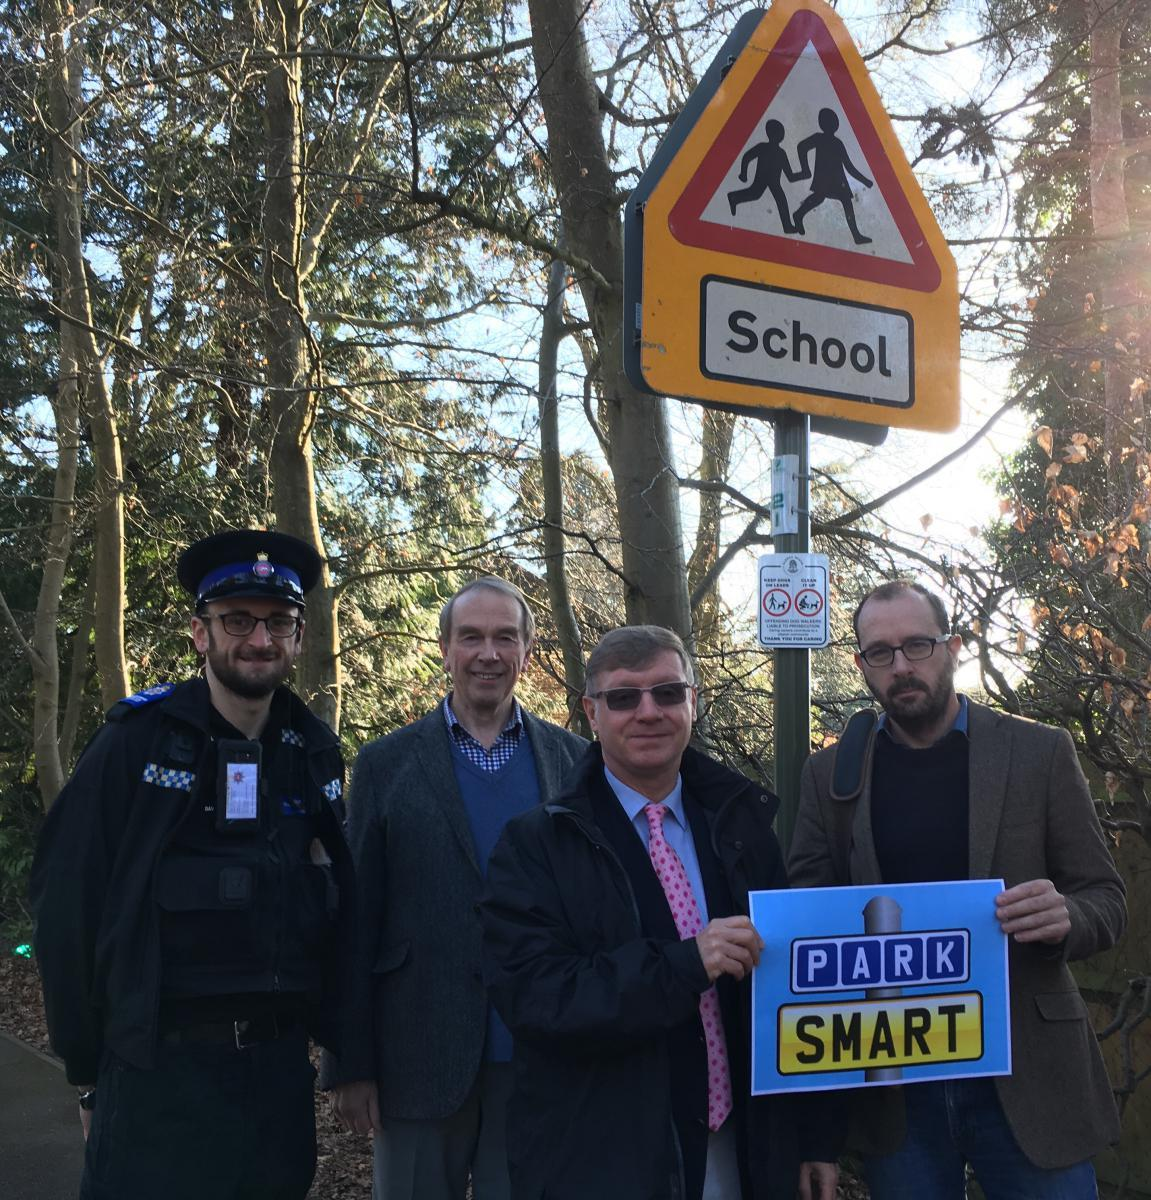 Cllr Bill Chapman, Geoffrey Palmer, Chair of Governors -Crawley Ridge Infant School, and David Oakley, Chair of Governors, Crawley Ridge Junior School, show their support